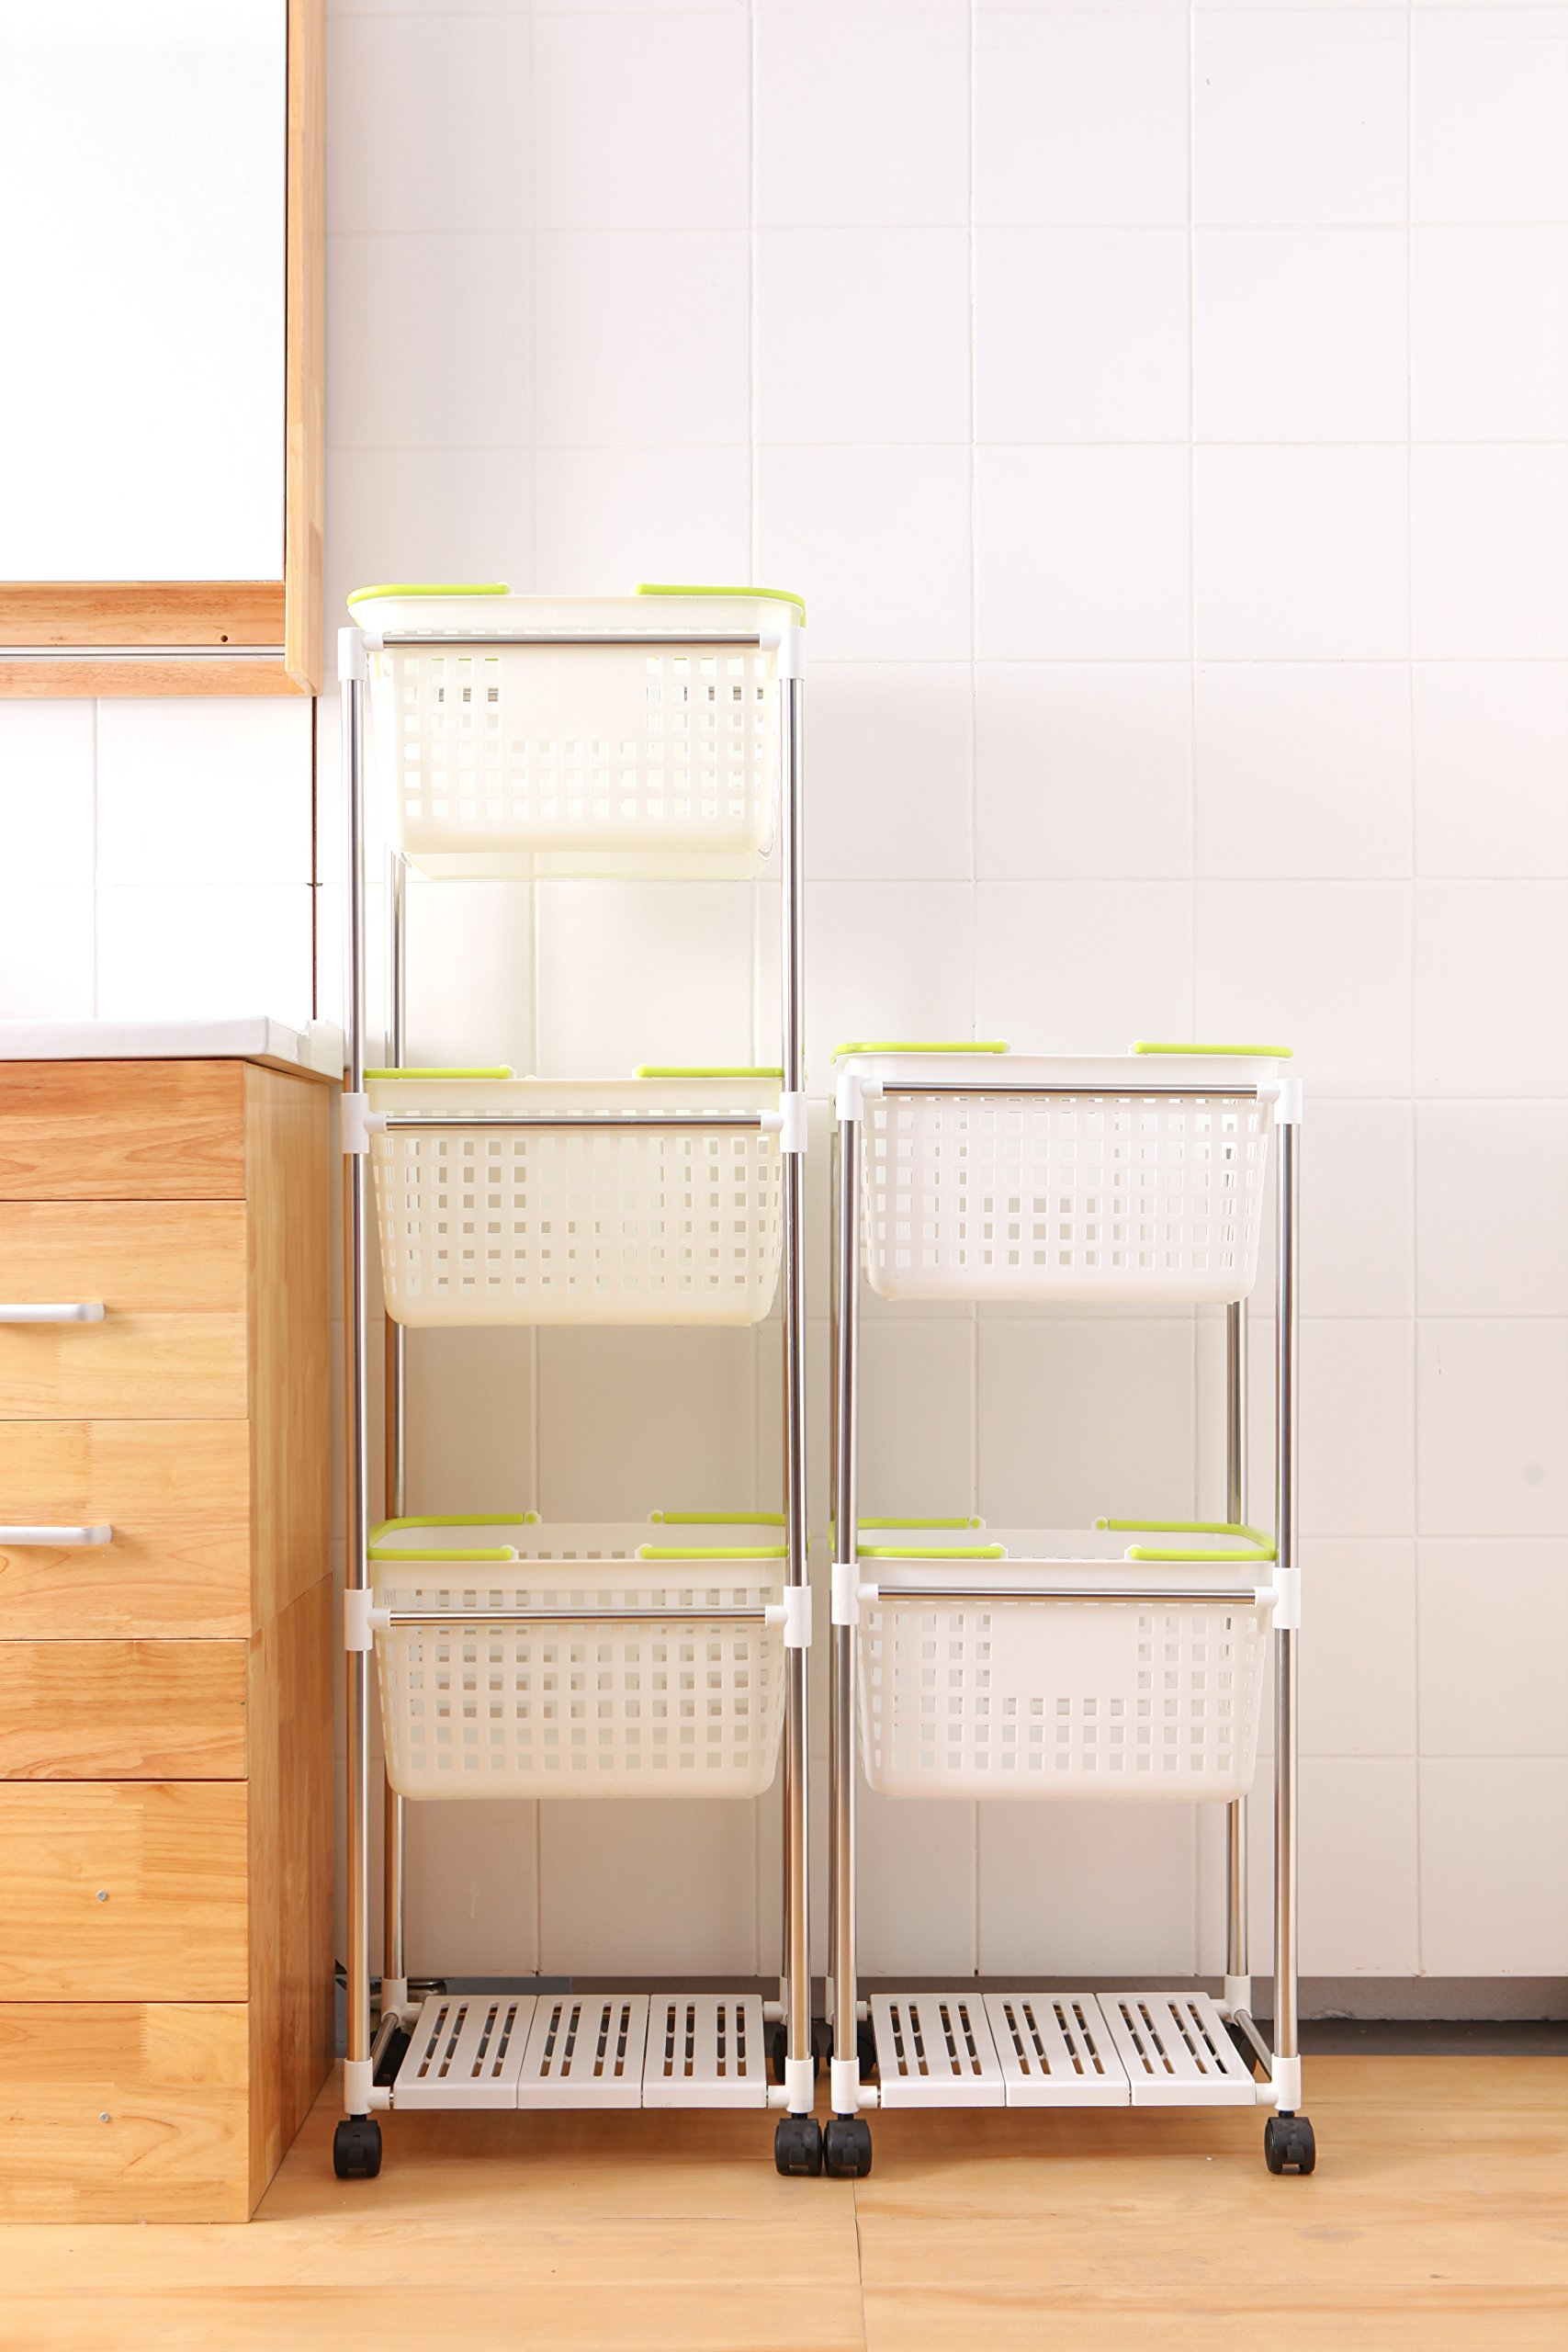 Newerlives Stainless Steel 4 Section Storage Shelf With Plastic Baskets,The System Rack(White) (3 Plastic Baskets)